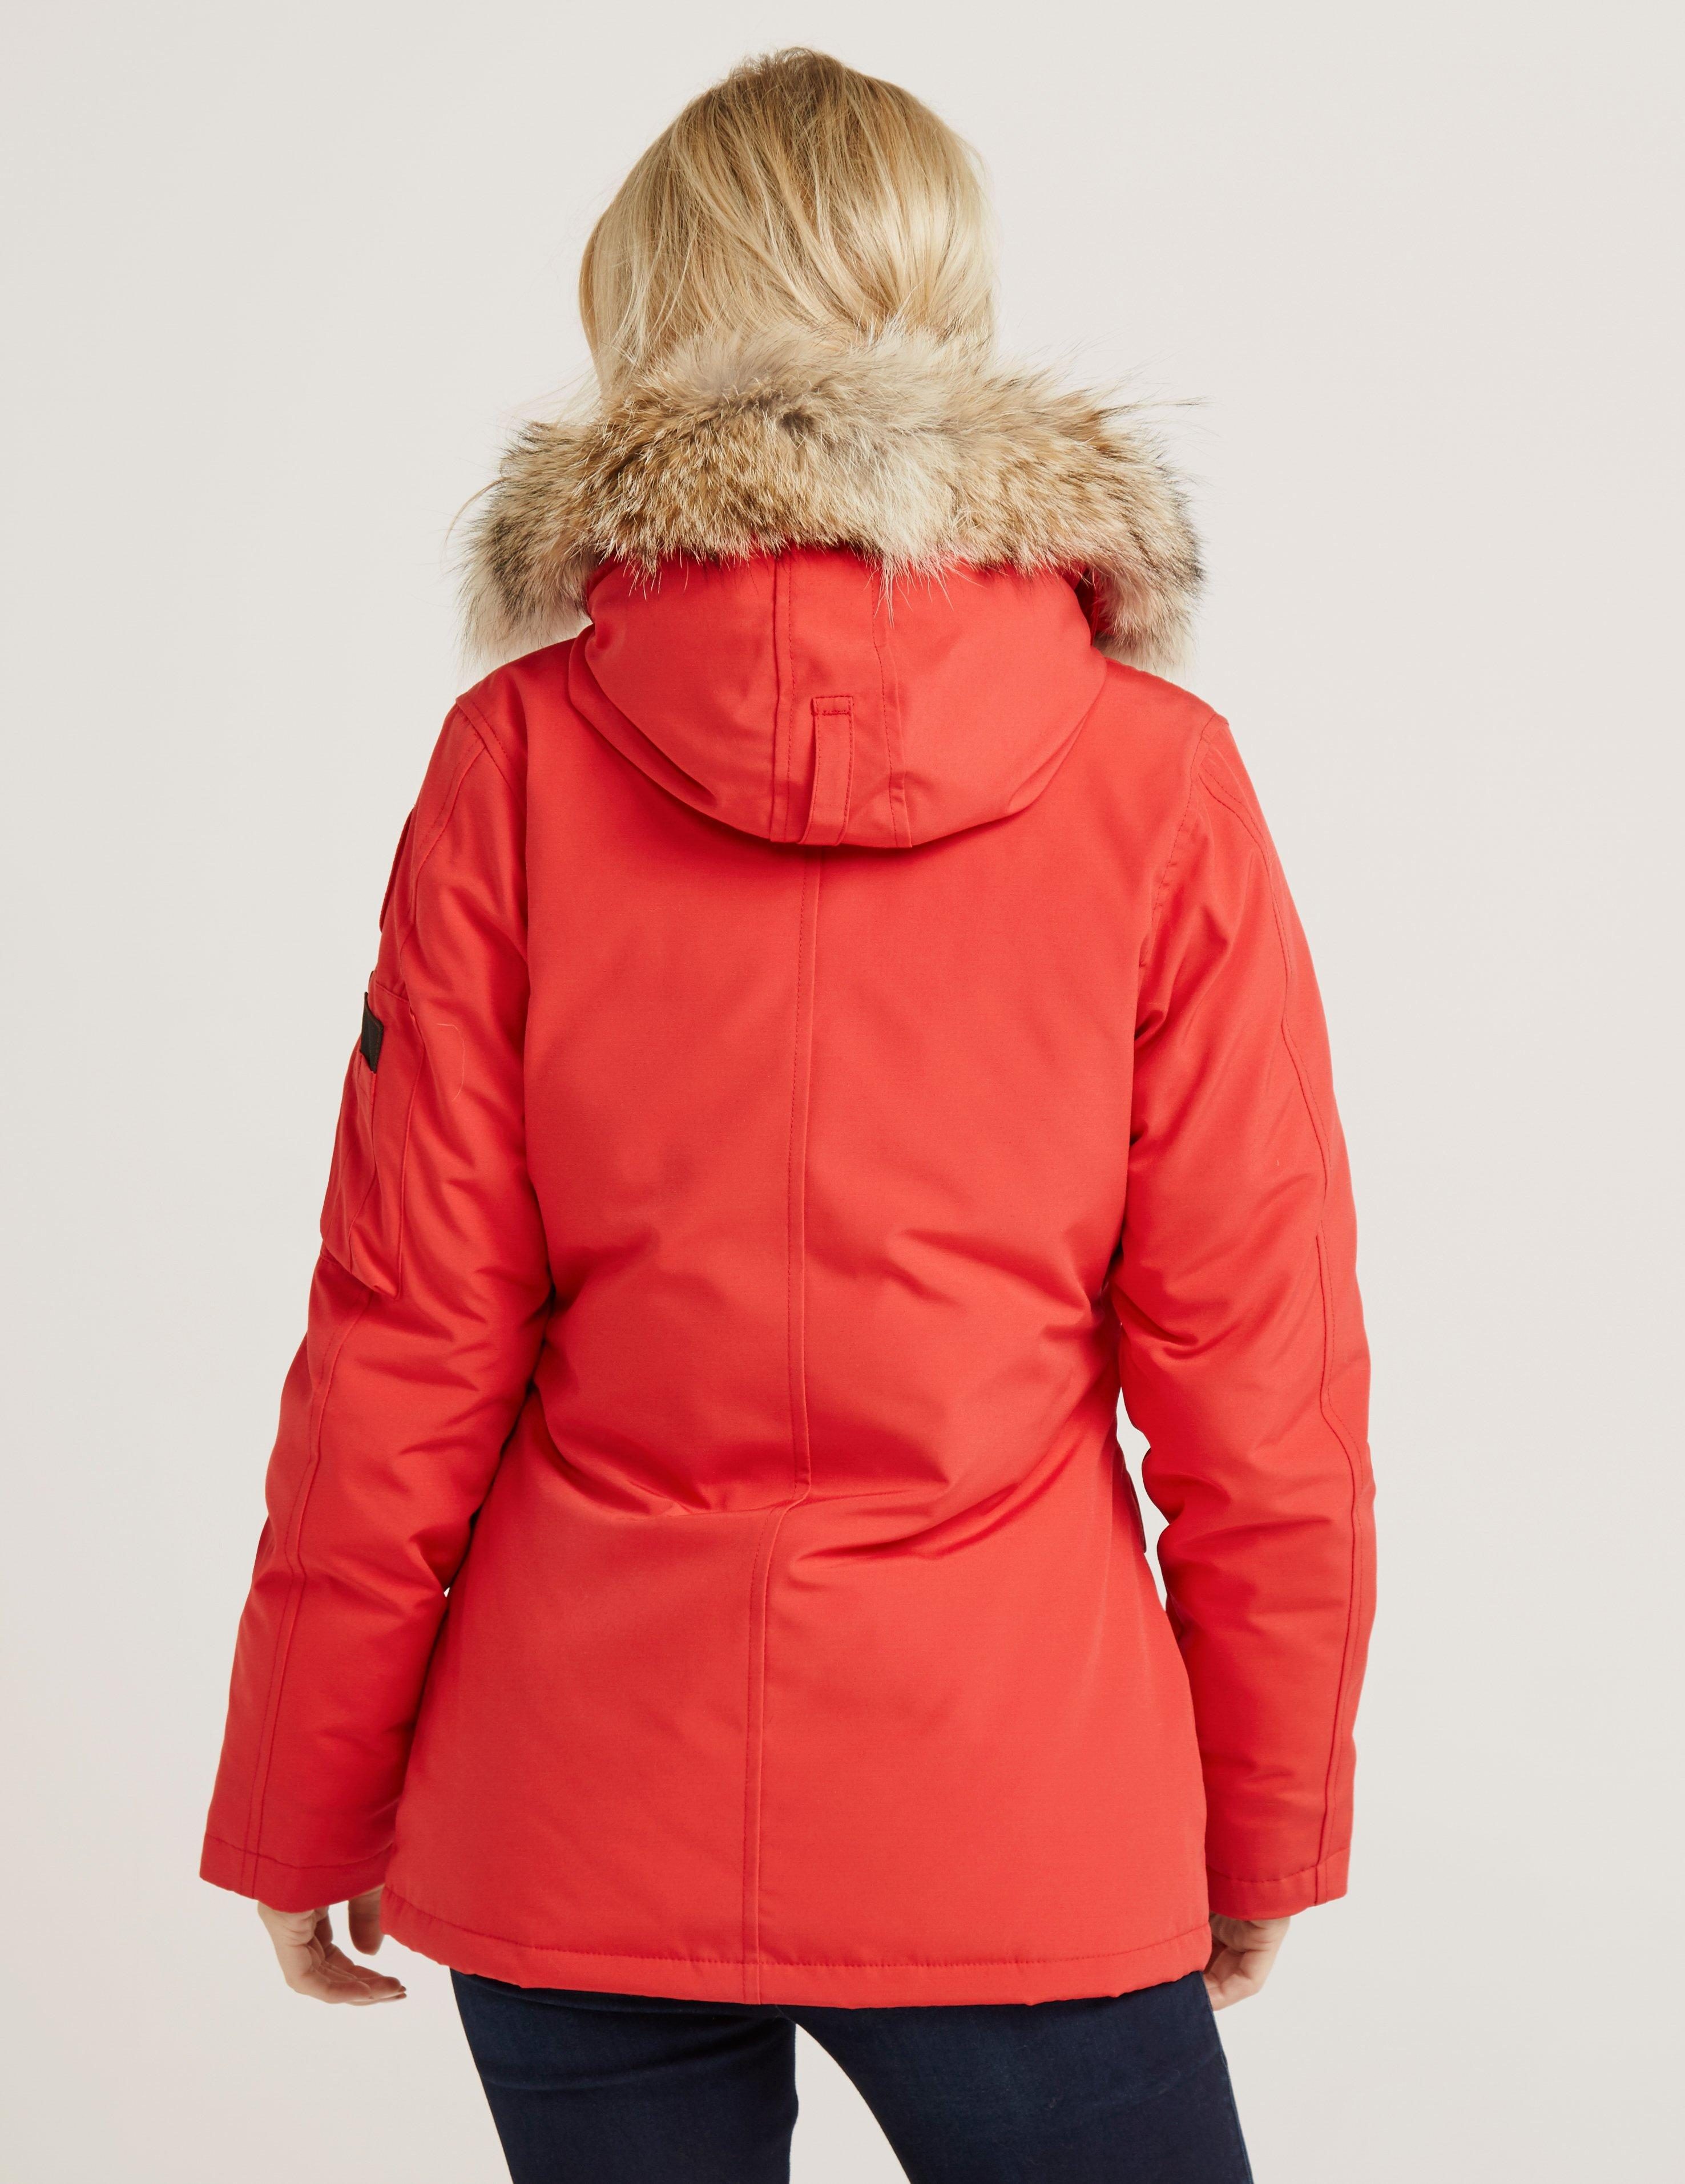 canada goose montebello parka in red save 3 4035656401944863 lyst rh lyst ca